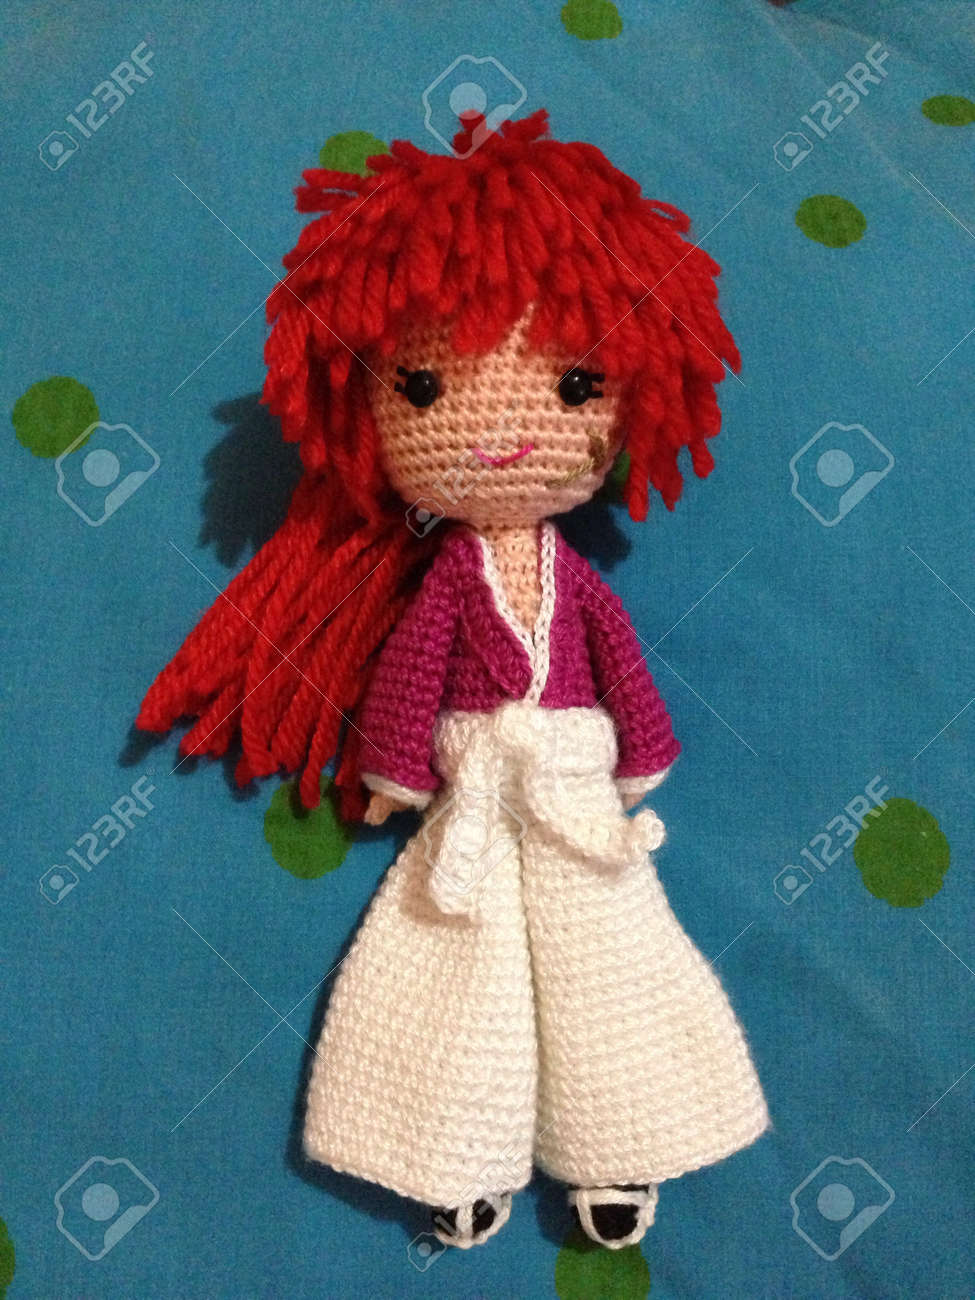 PDF Amigurumi Doll PATTERN, Crochet Little Doll Witch, DIY Doll ... | 1300x974